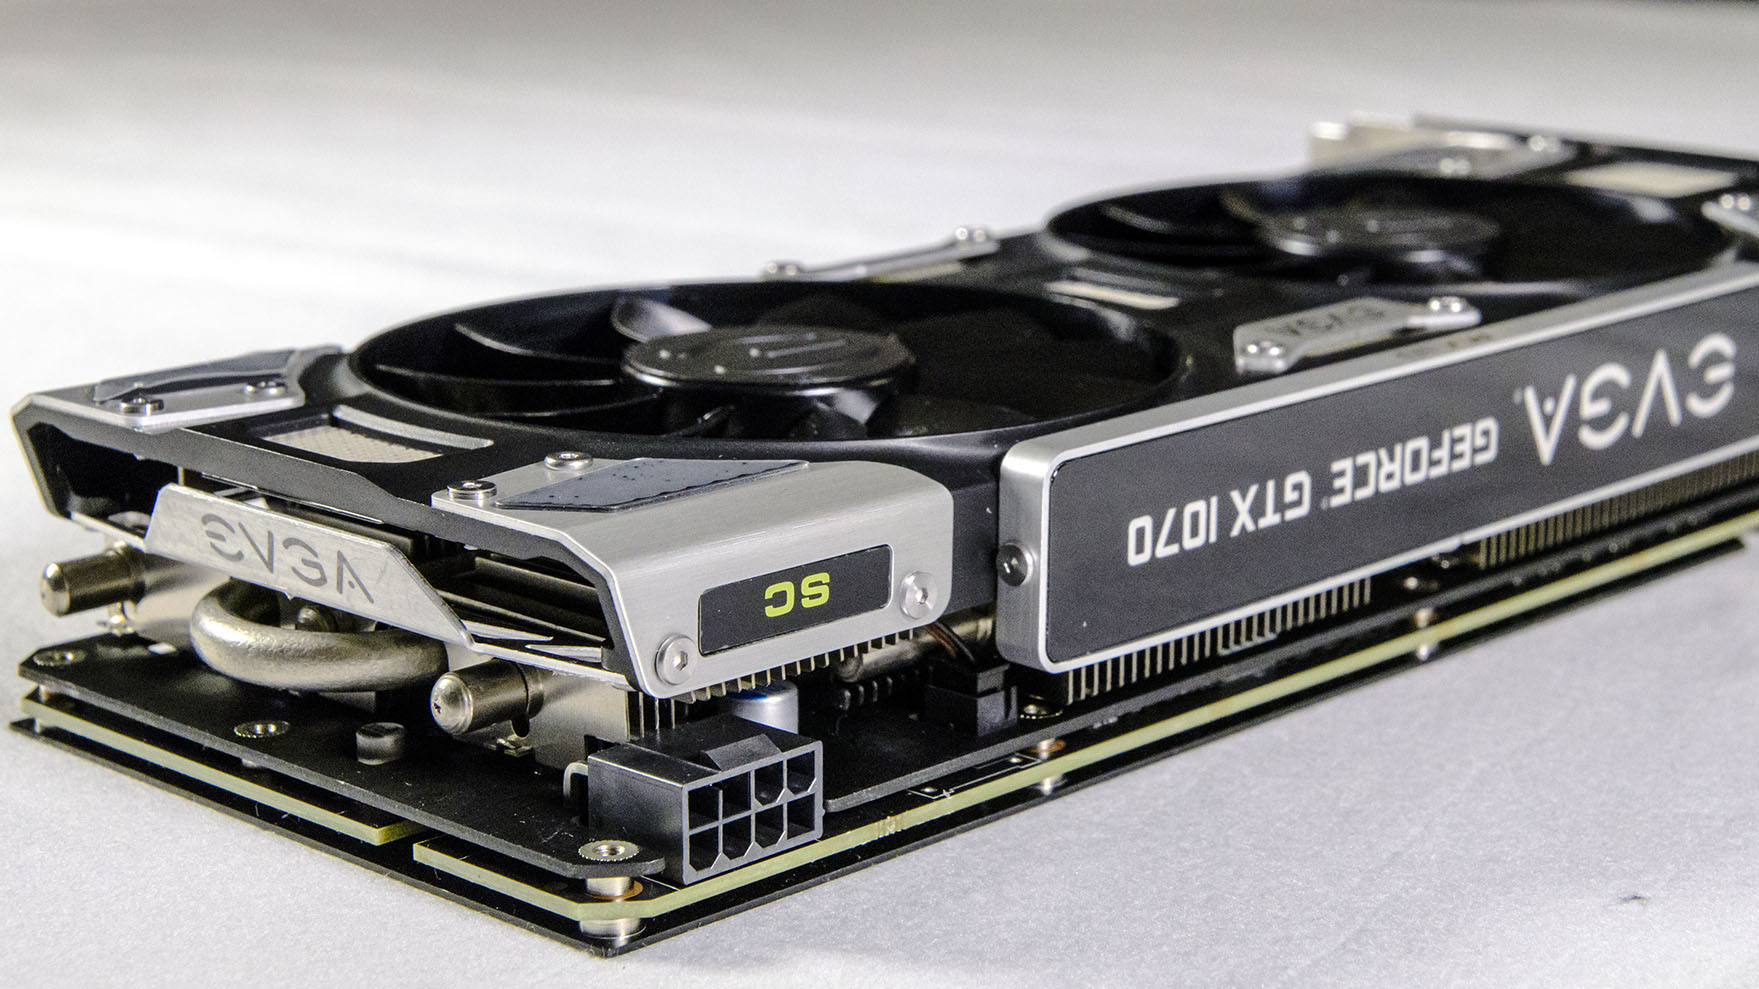 Tested: eVGA GeForce GTX 1070 Video Card - Tested